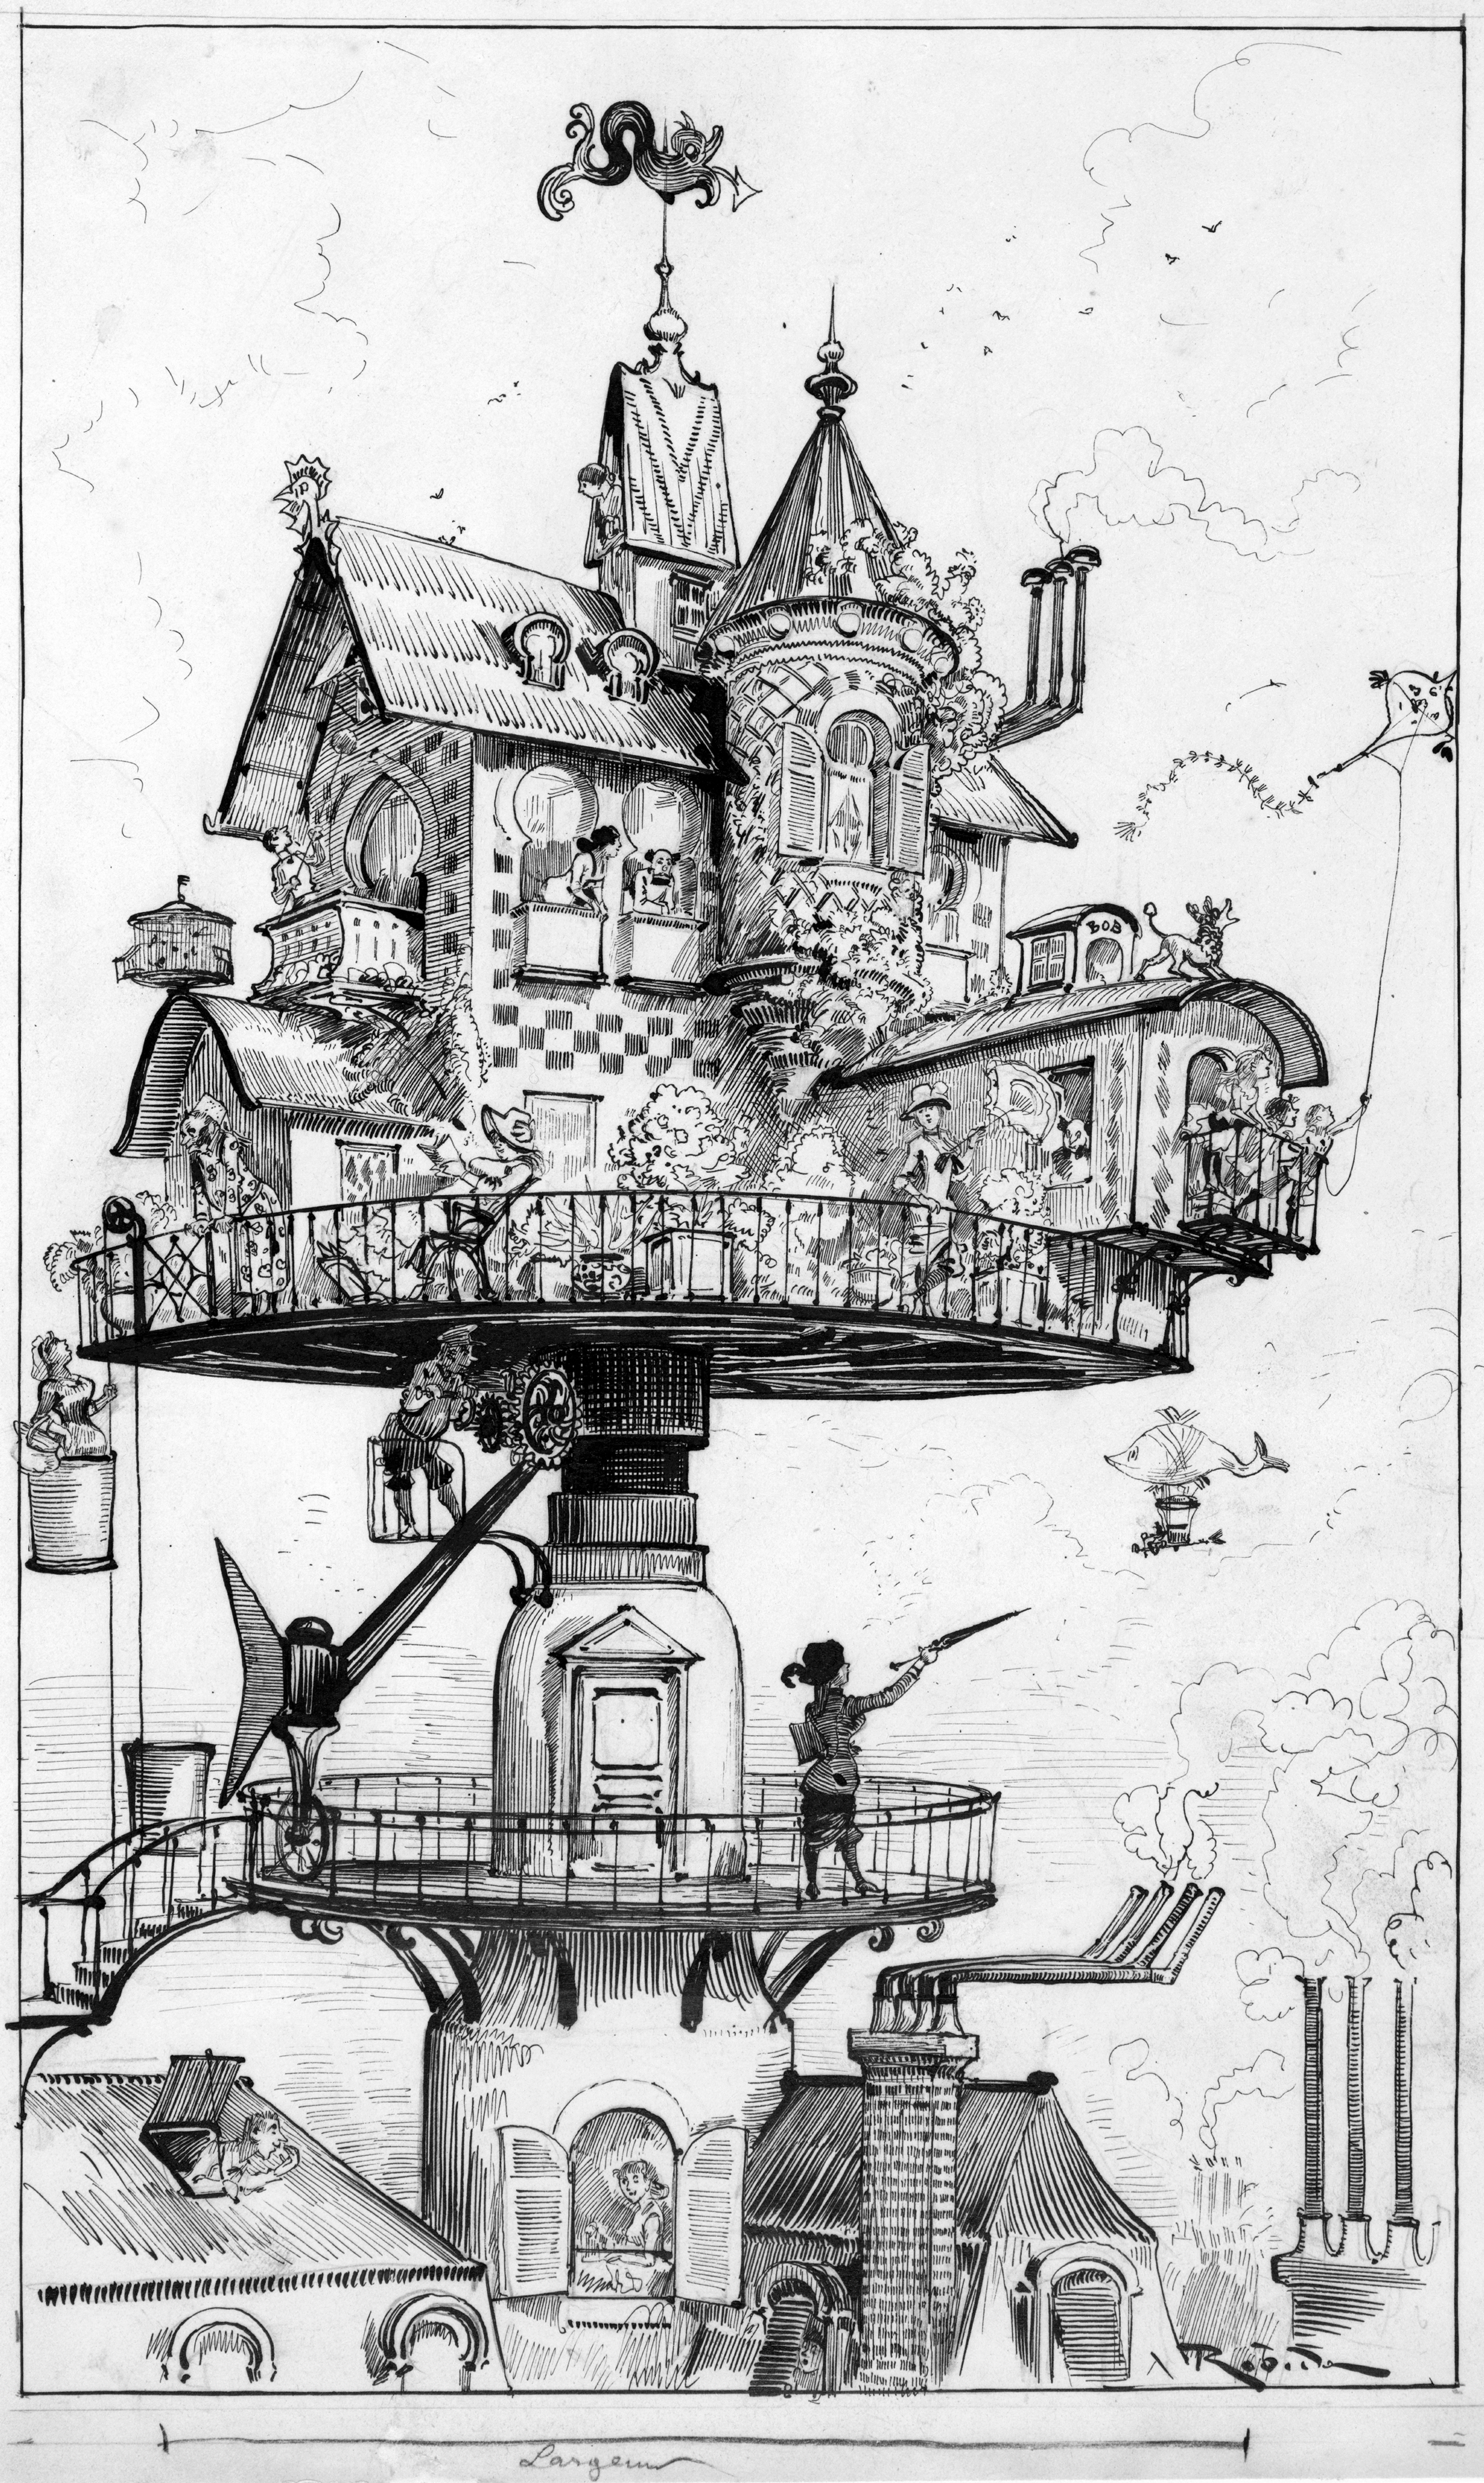 """""""Maison tournante aérienne"""" (aerial rotating house) by  Albert Robida  (ca. 1883). A drawing for his book  Le Vingtième Siècle , a 19th century conception of life in the 20th century."""